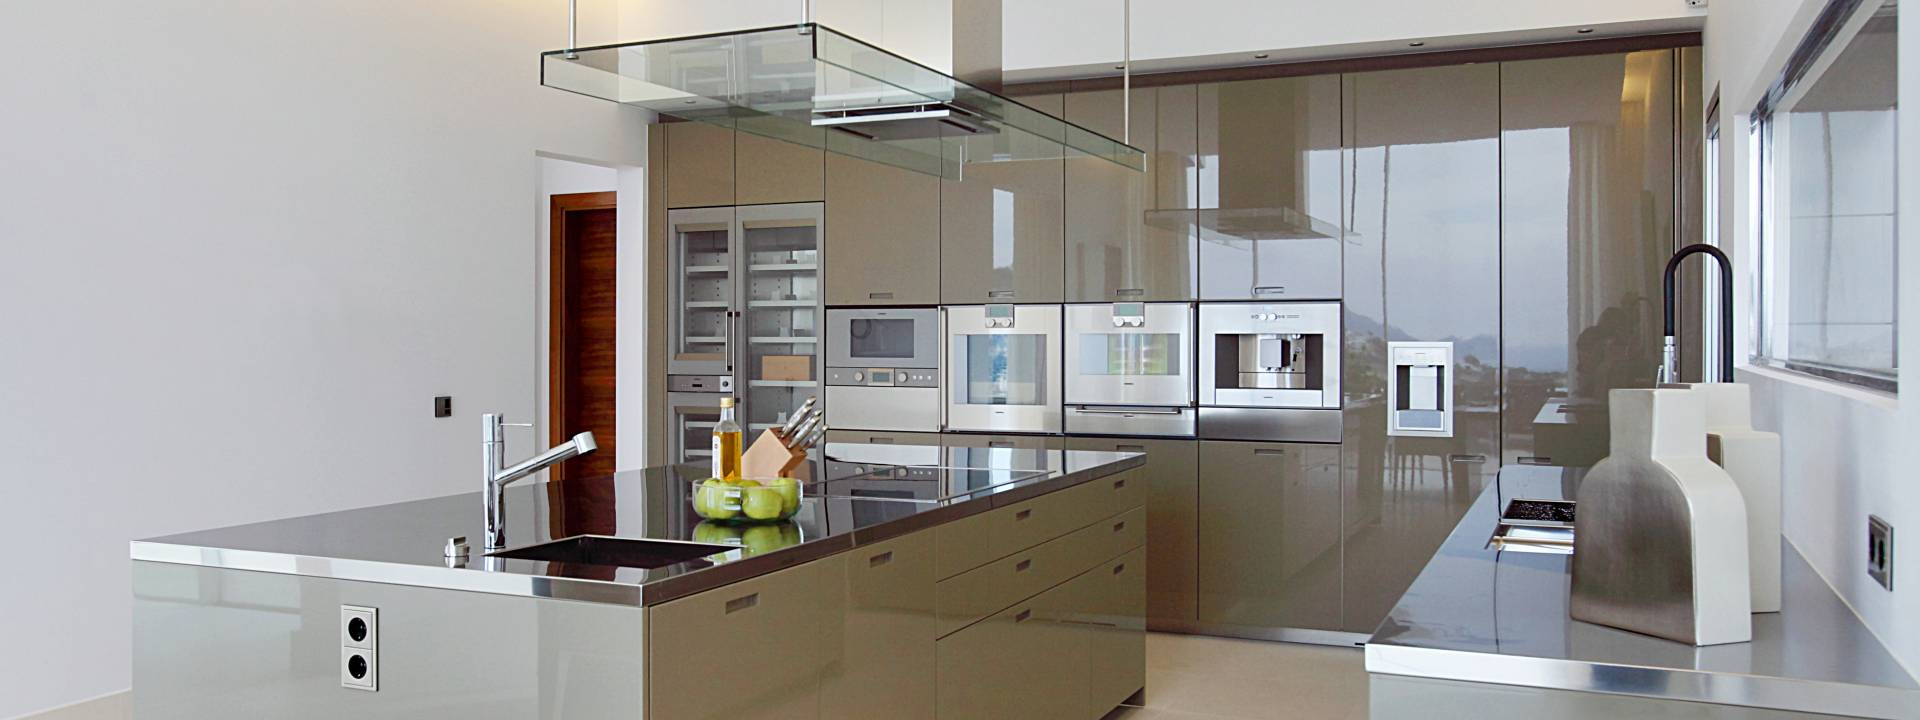 Luxury-villa-Mallorca-Kitchen-Bulthaup-interior-design